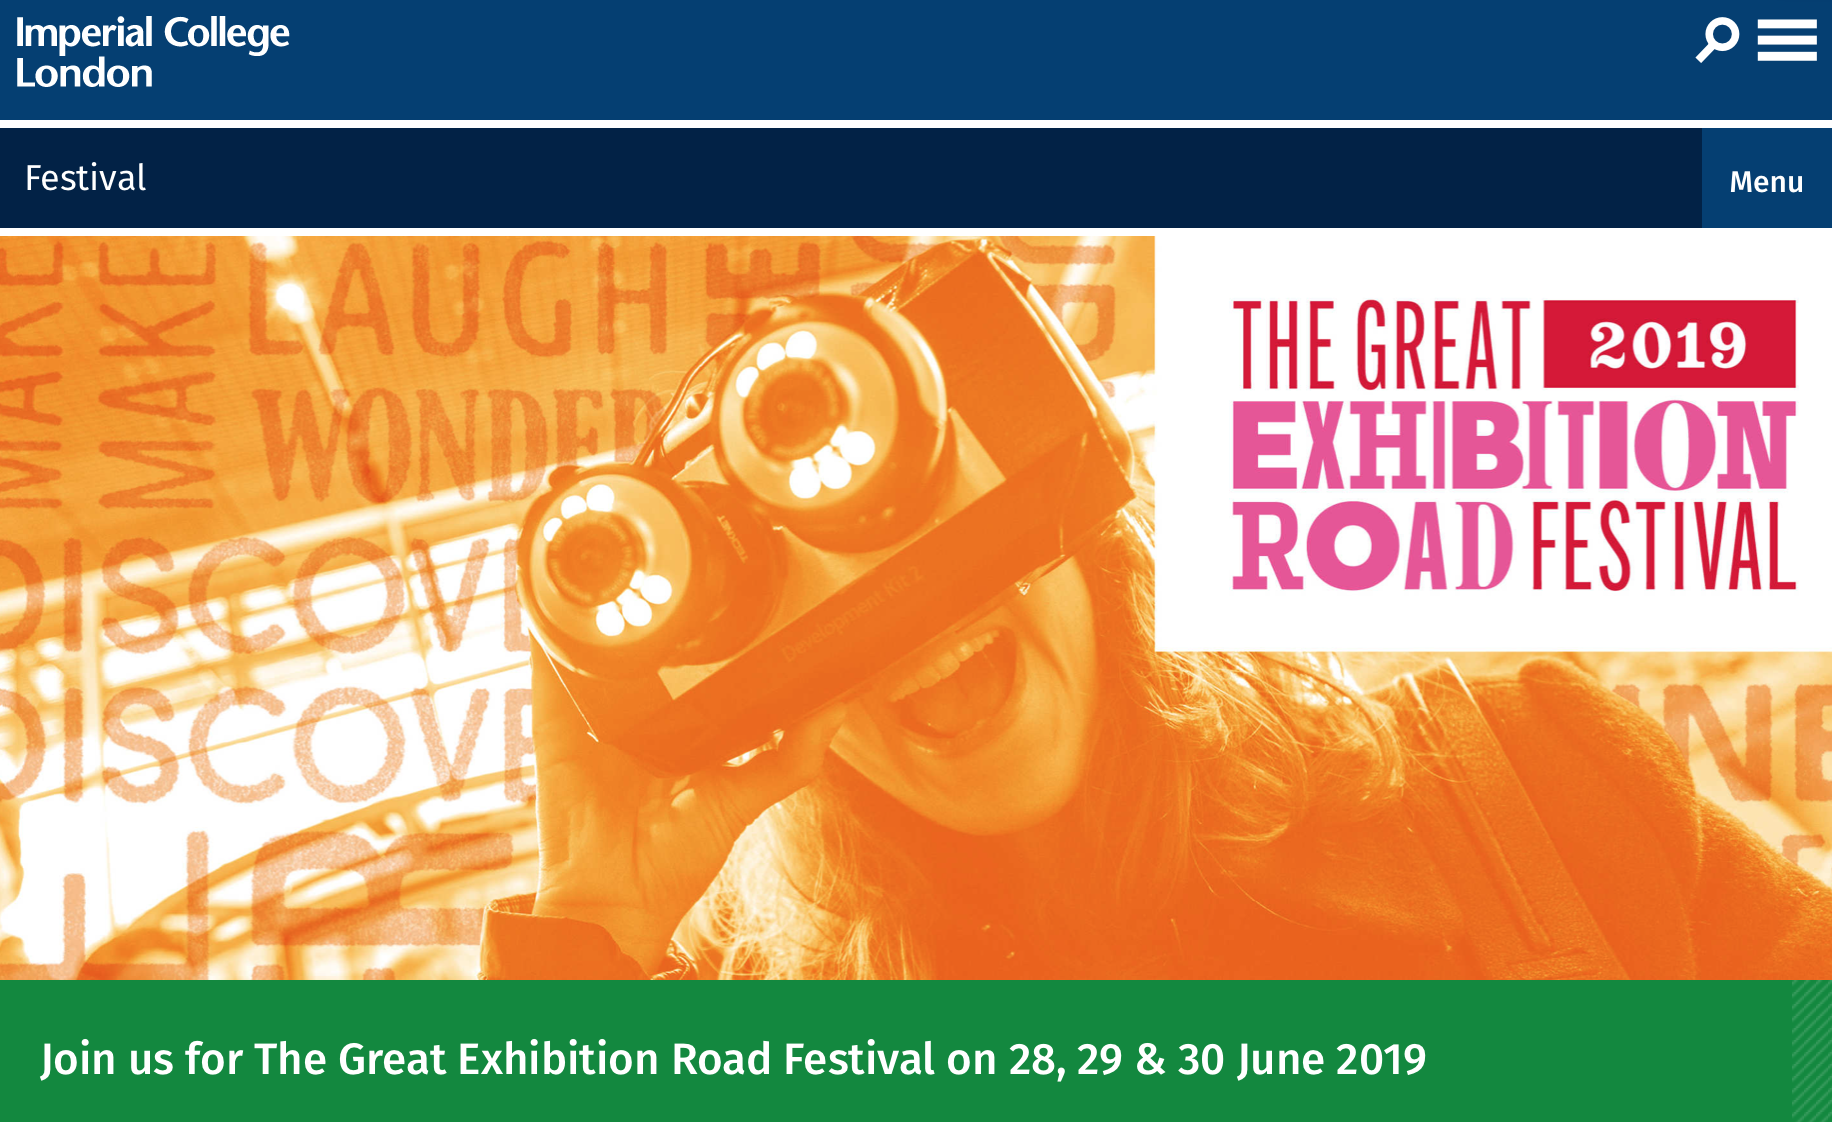 Great Exhibition Rd Festival 2019